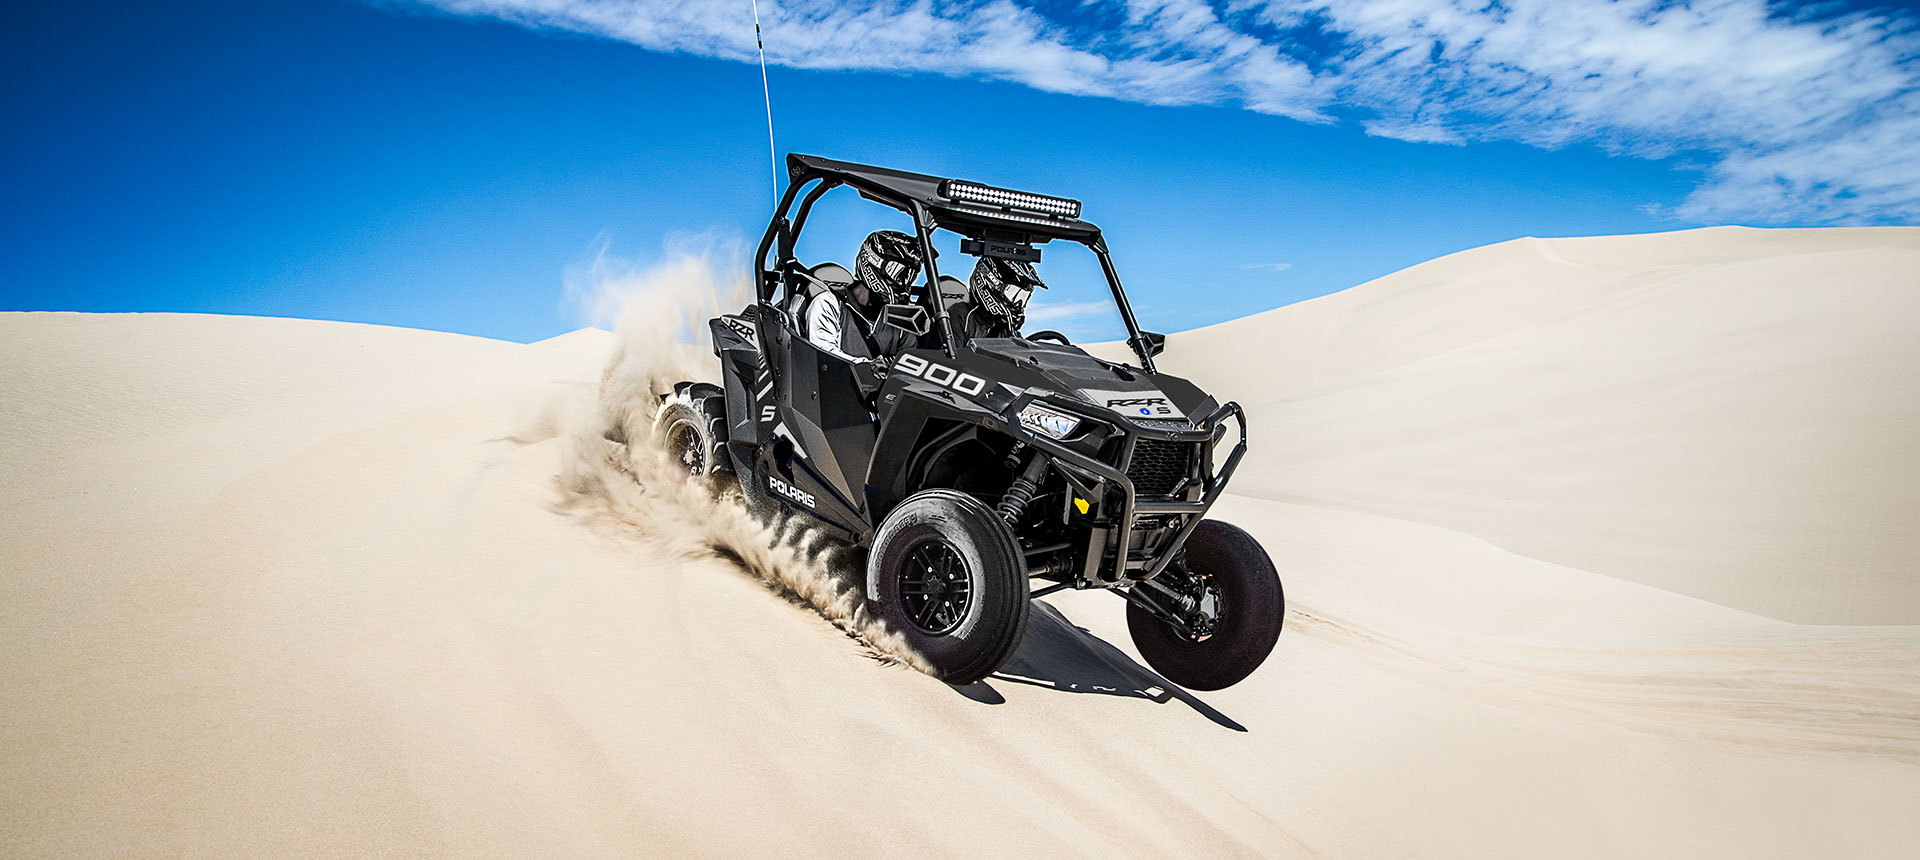 2019 Polaris RZR S 900 in Sumter, South Carolina